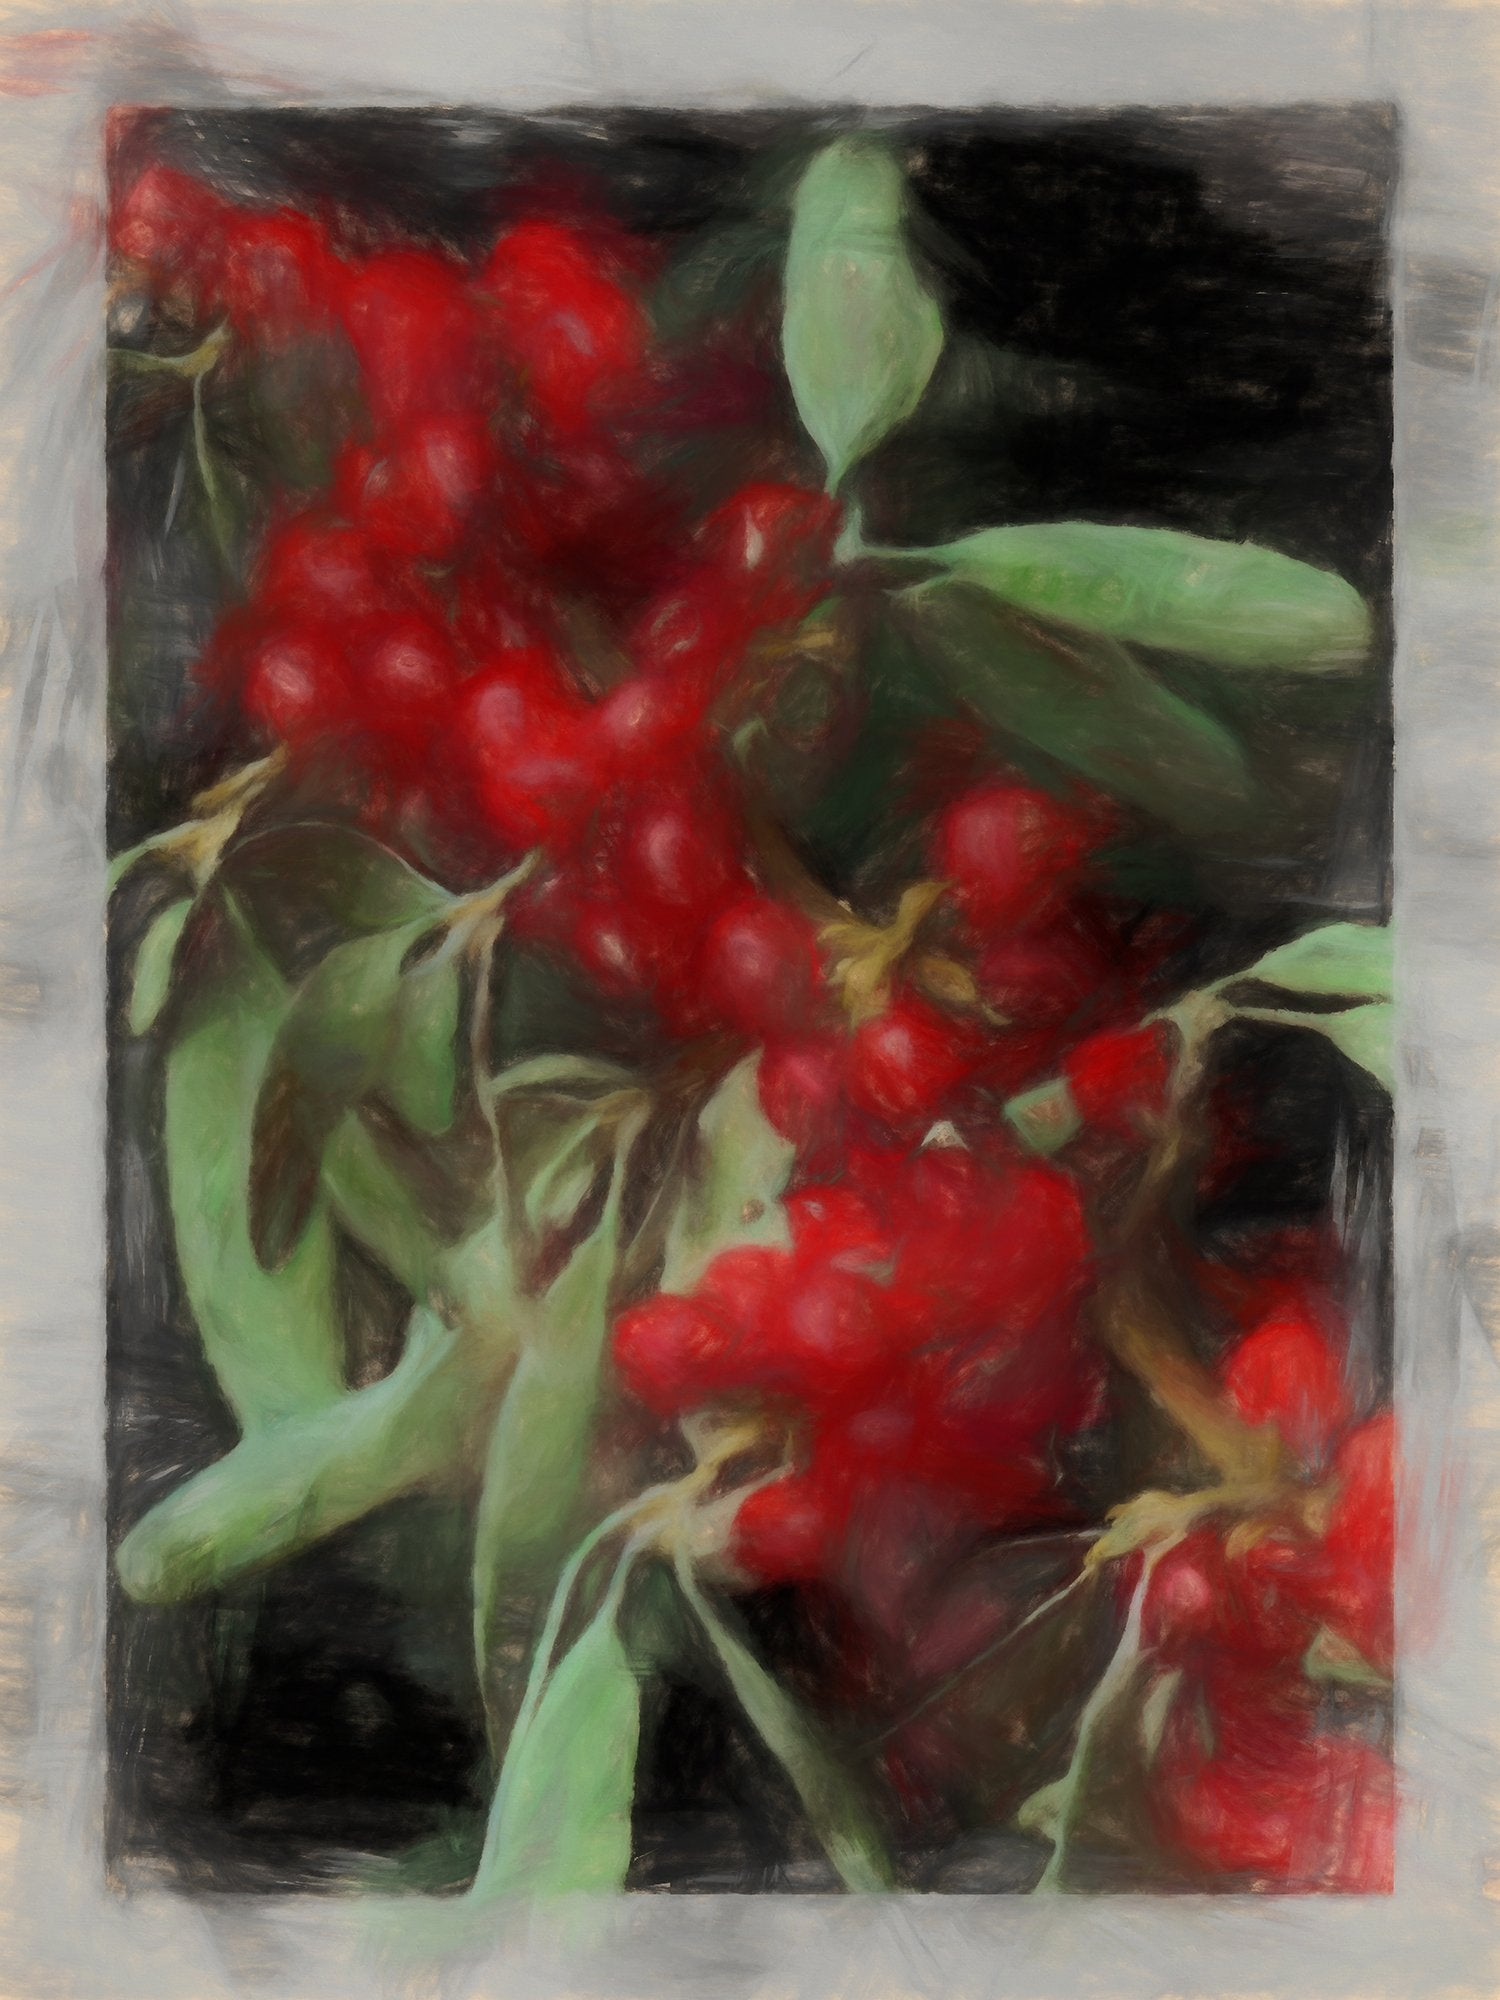 Shepherdia Argentea (Buffalo Berry), Reworked, Series 2